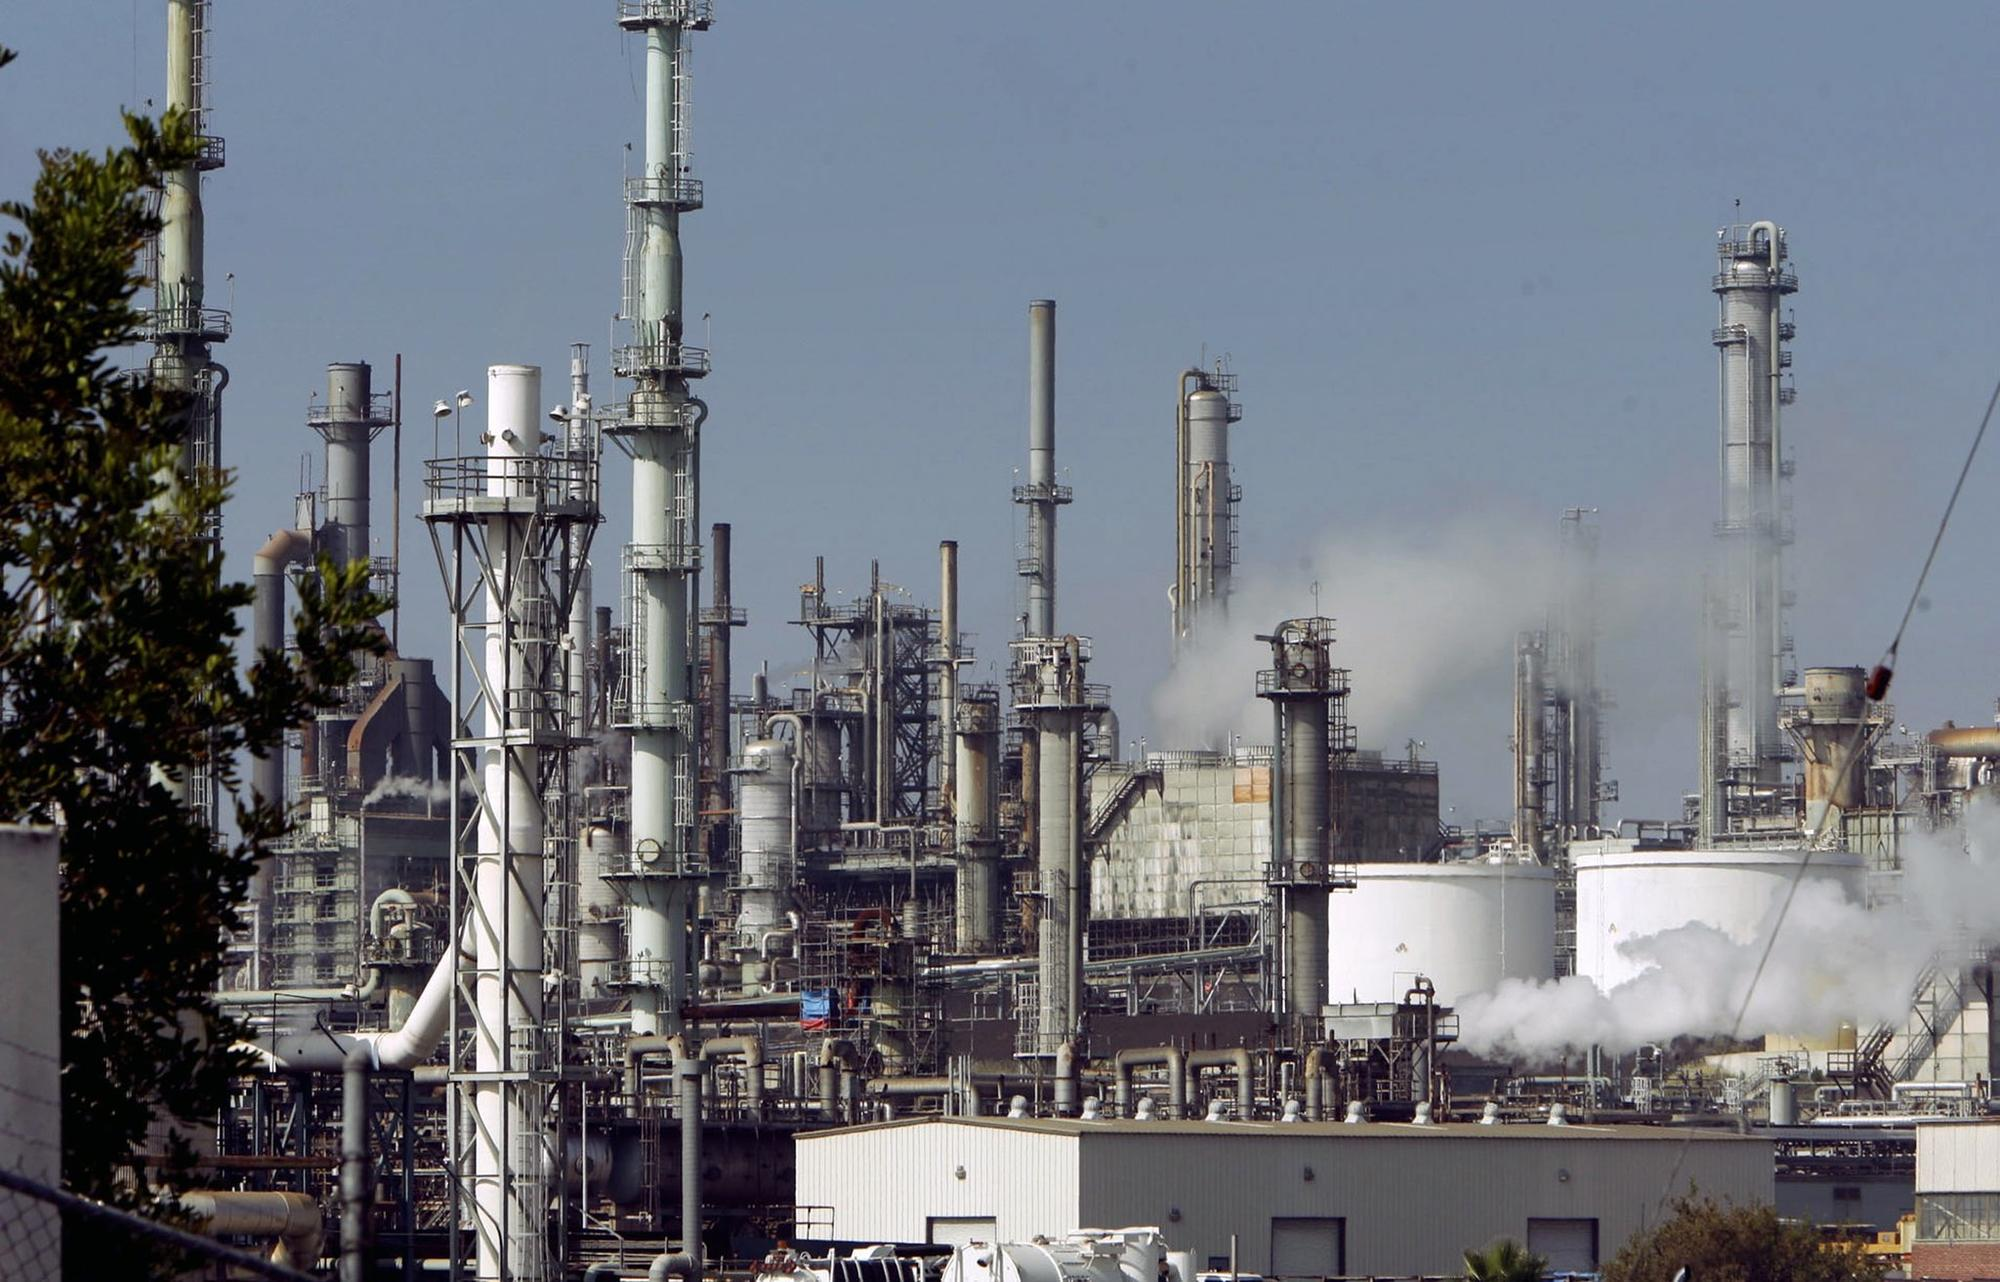 FILE - This July 6, 2006 file photo shows the ConocoPhillips Los Angeles Refinery in operation. The Environmental Protection Agency is coming to one of the nation's largest petro